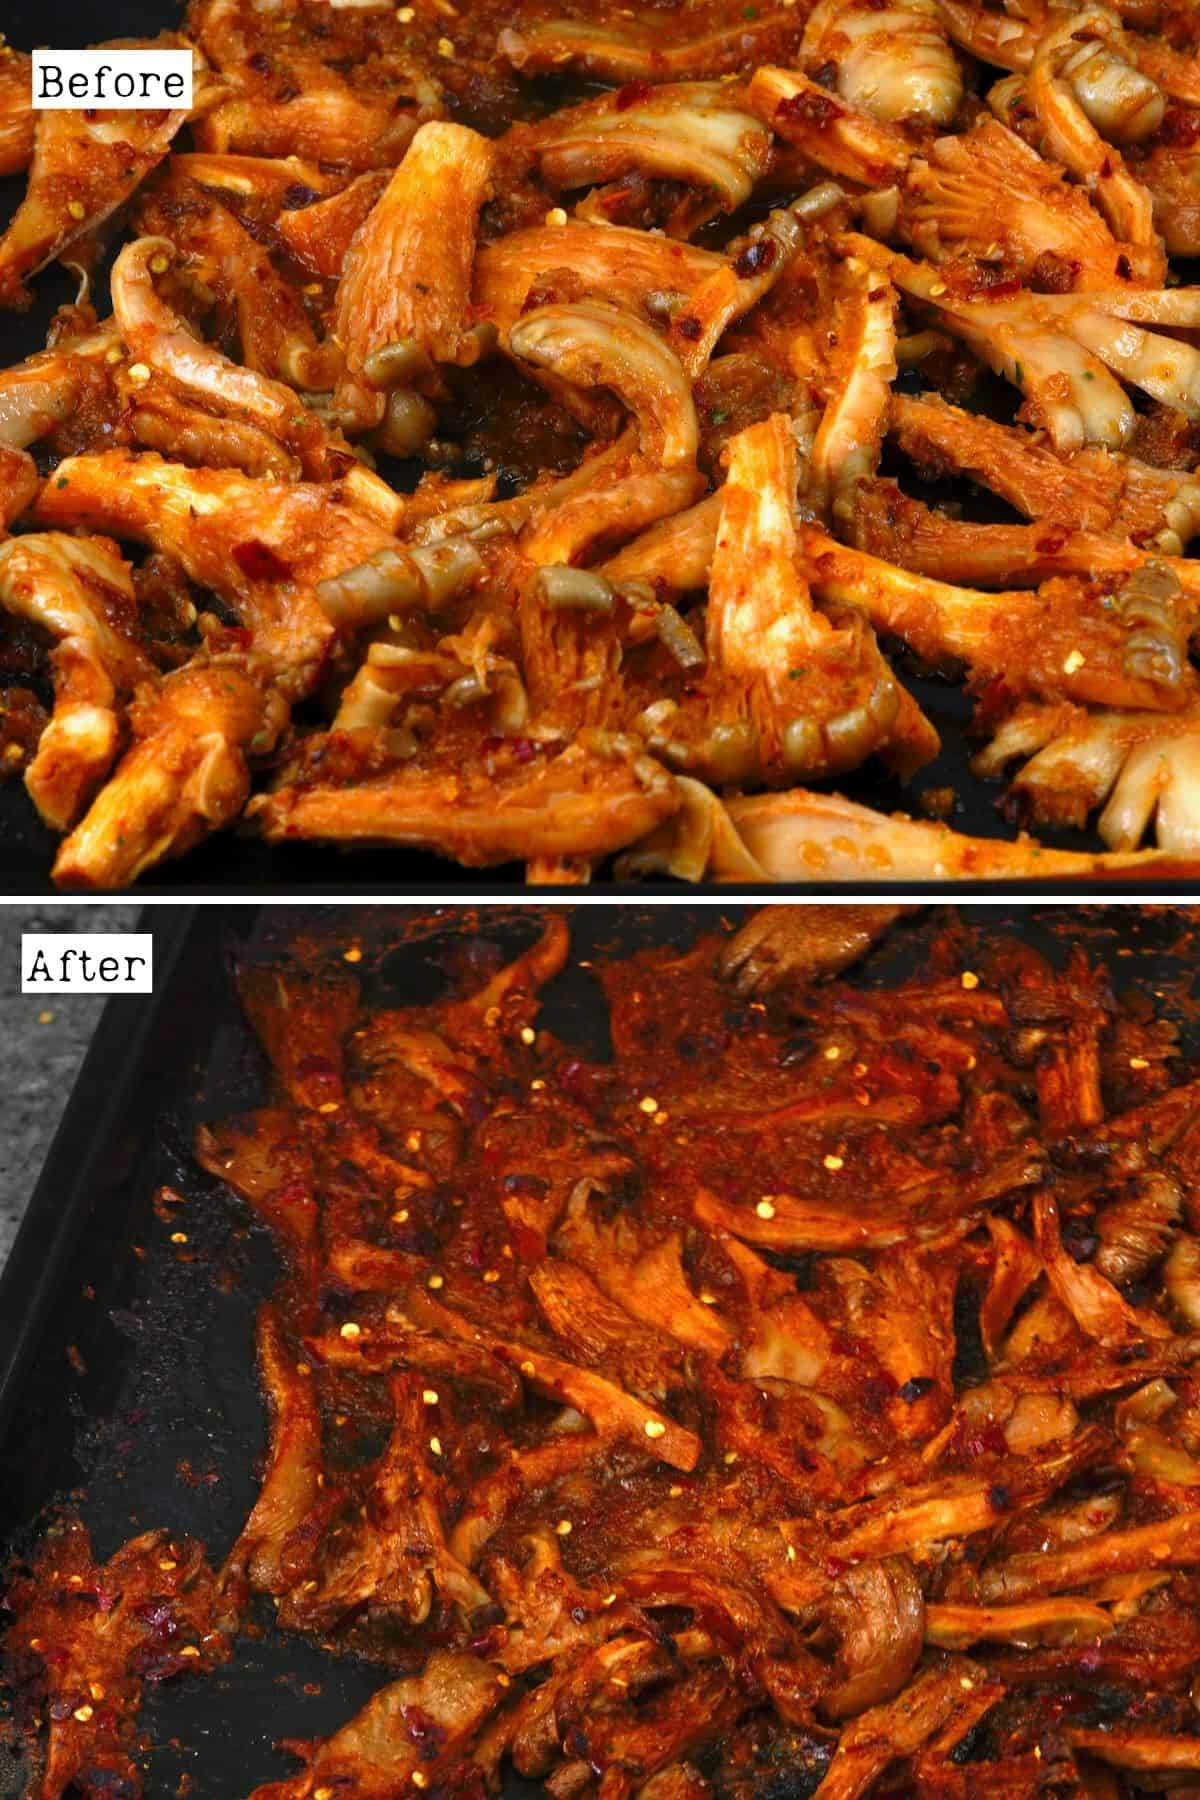 Before and after roasting marinated mushrooms